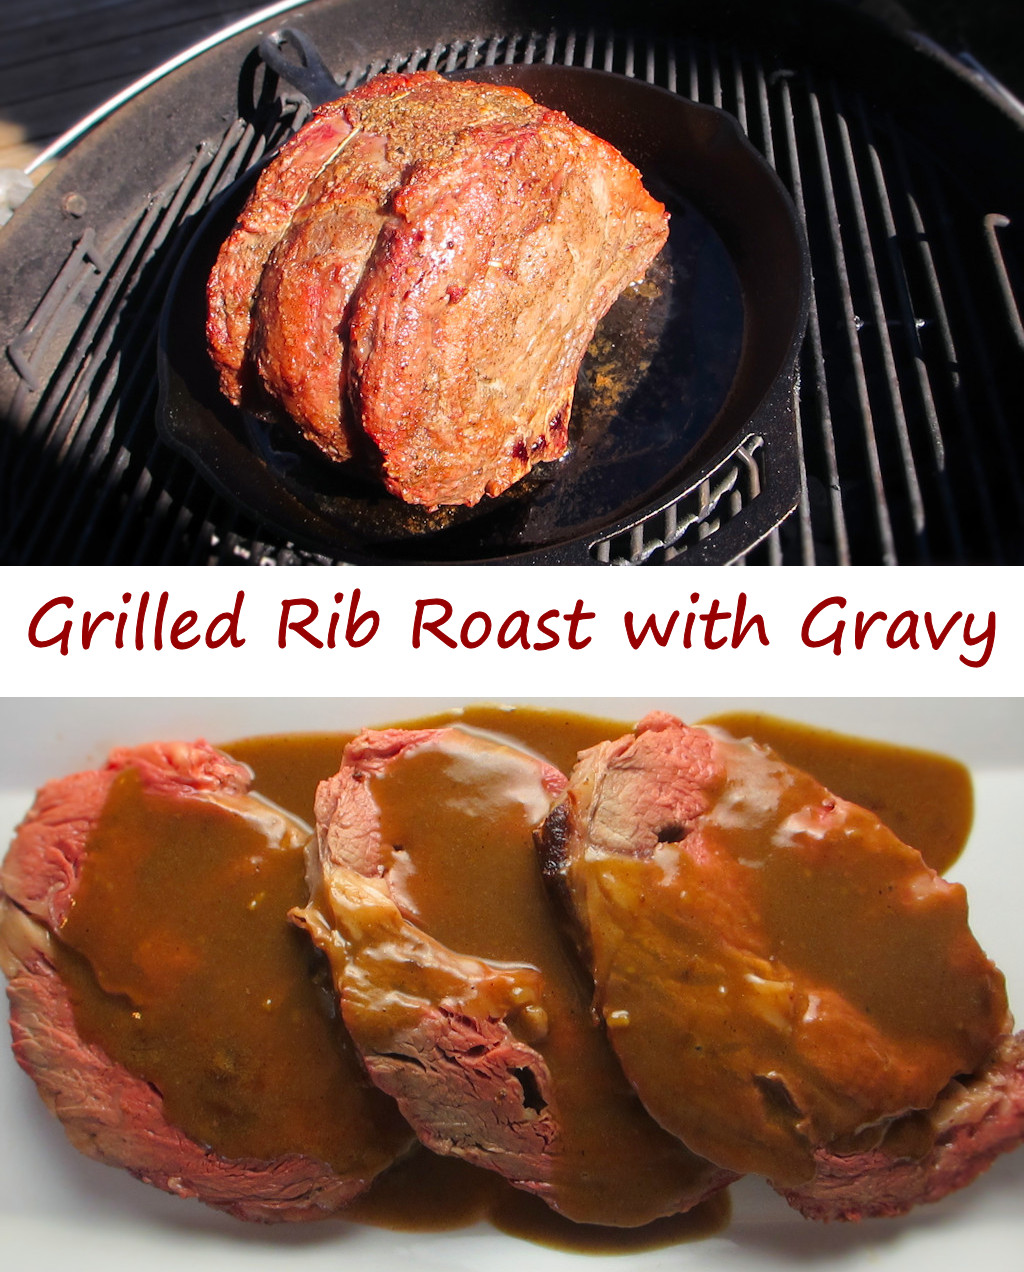 Grilled Rib Roast with Gravy